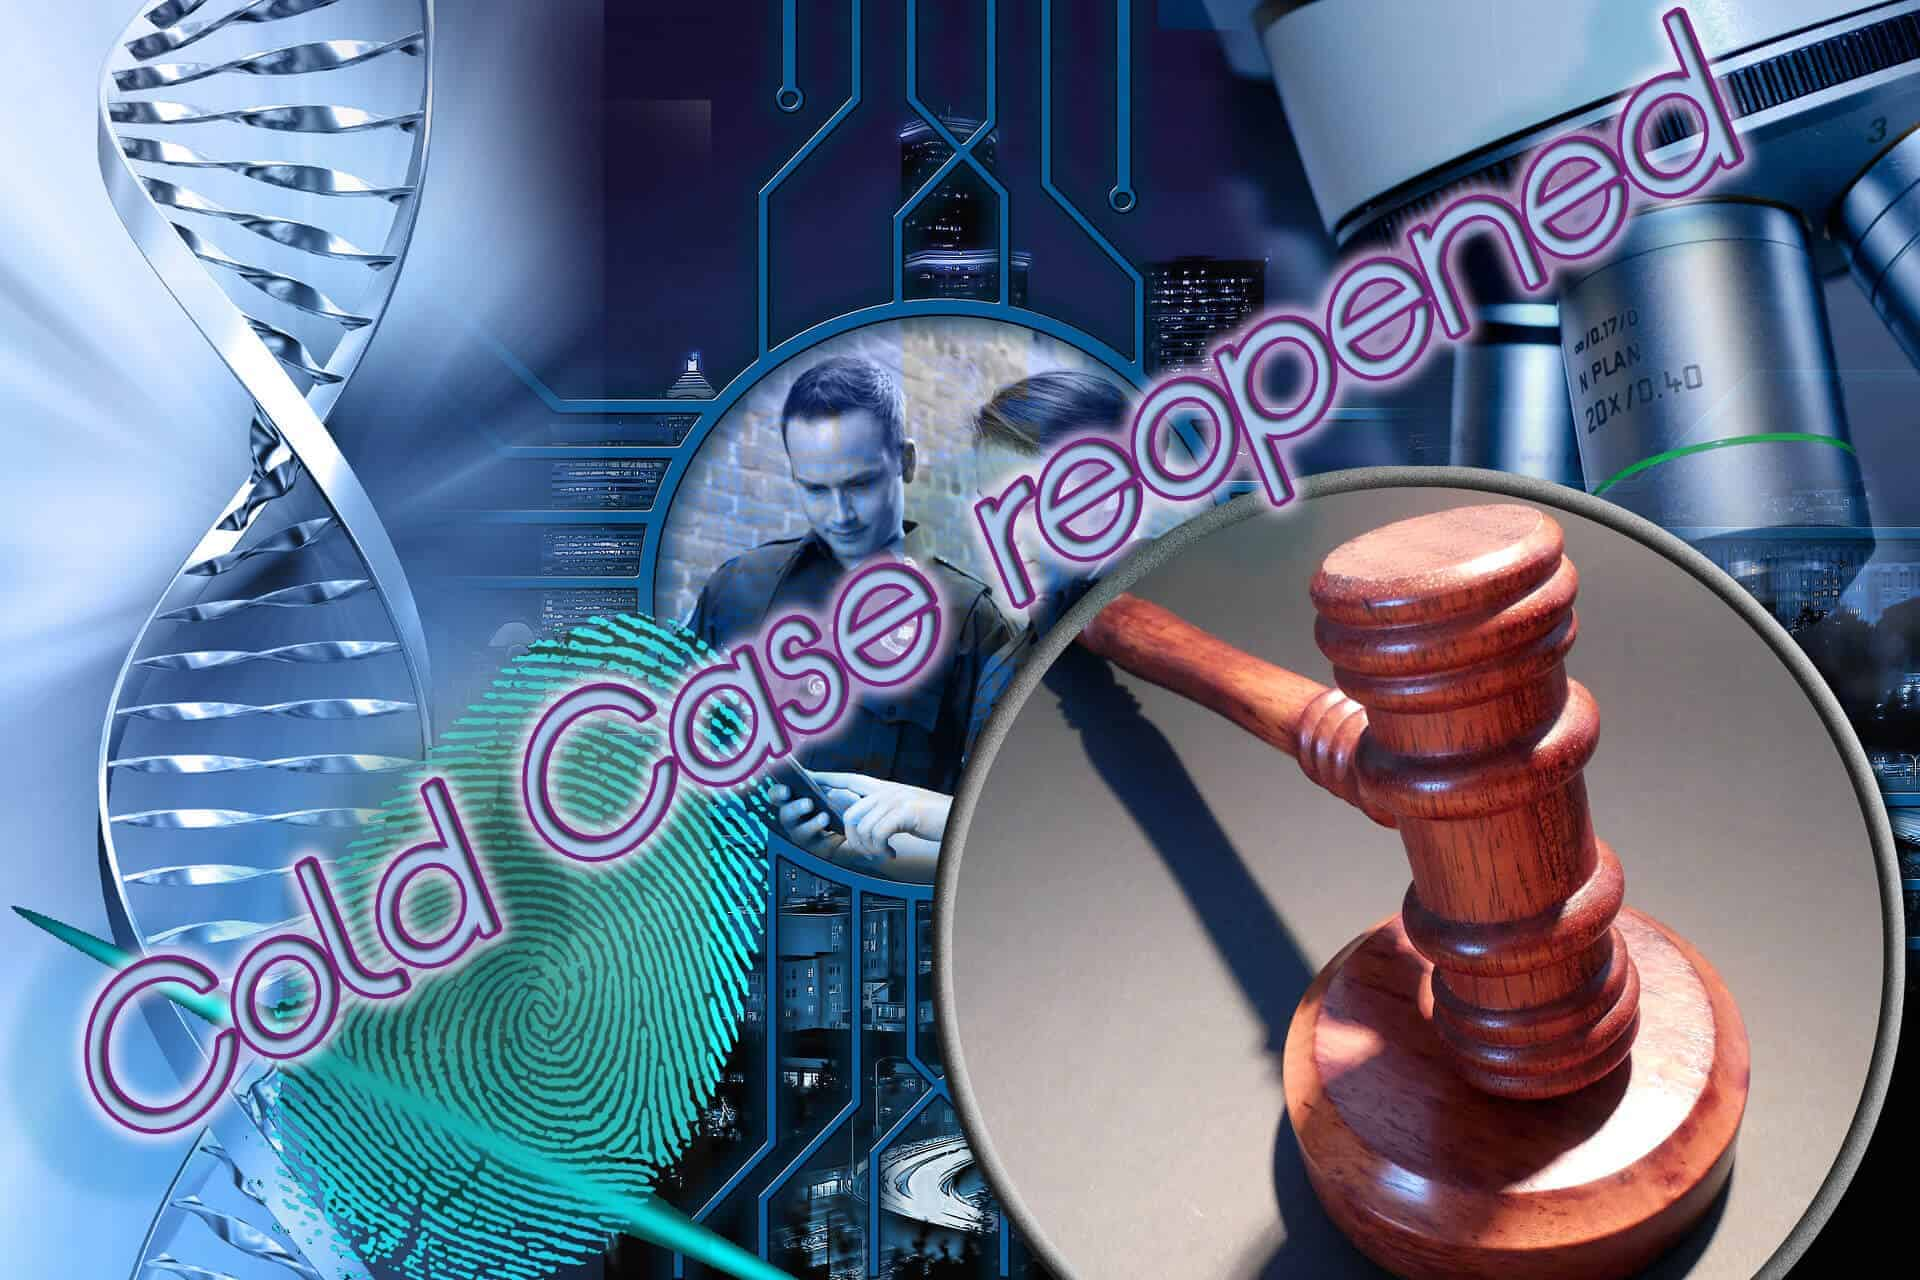 Cold Case opened